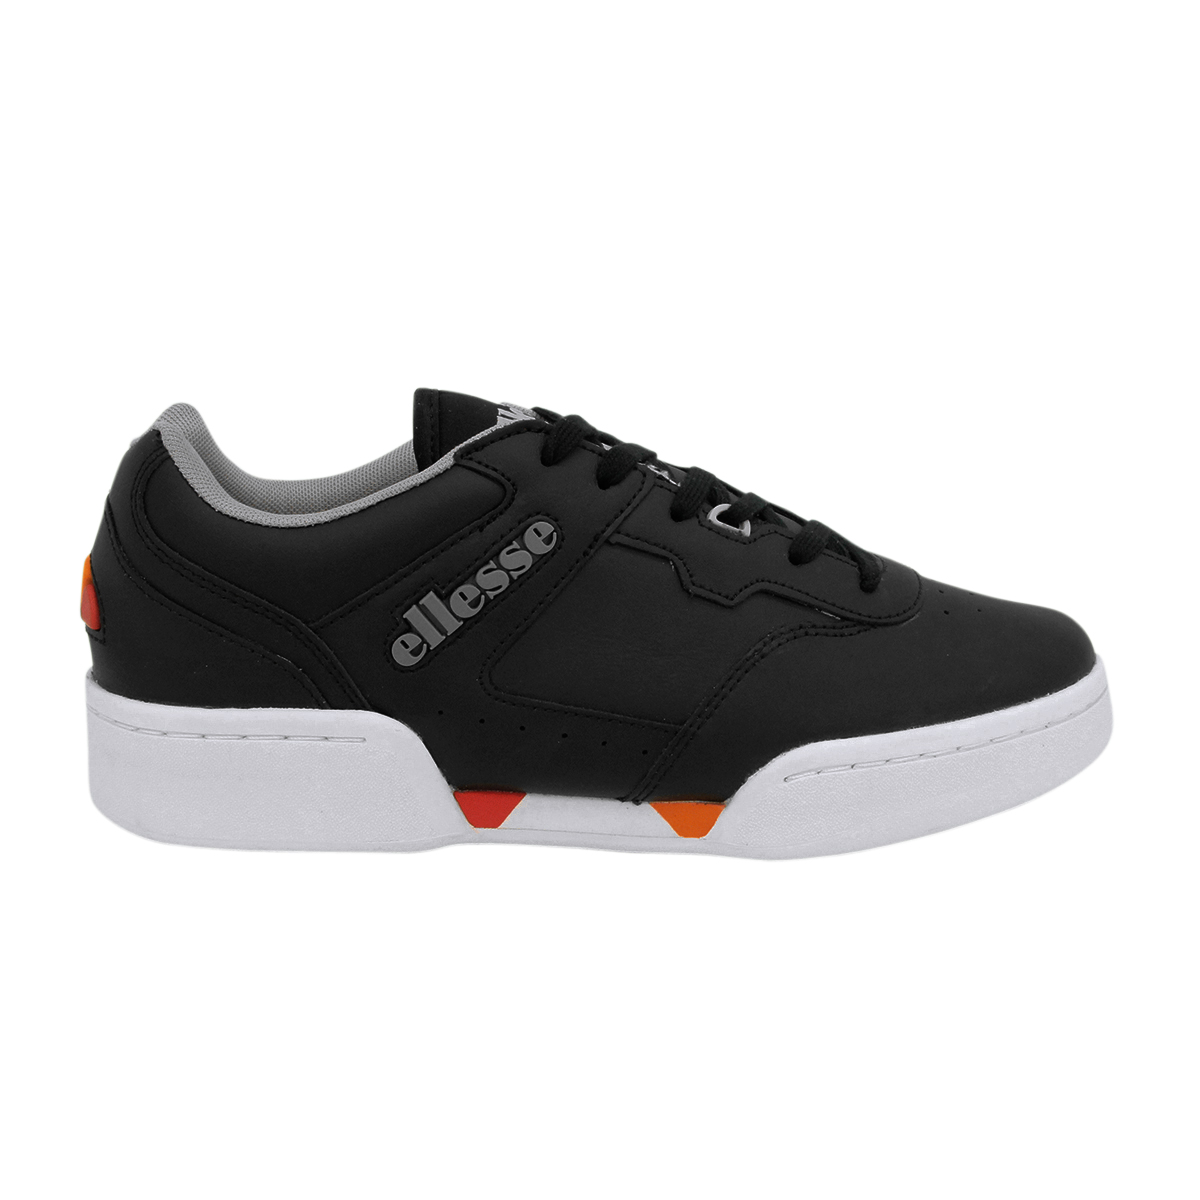 Ellesse Piacentino 2.0 Cuir Homme Baskets Chaussures NEUF